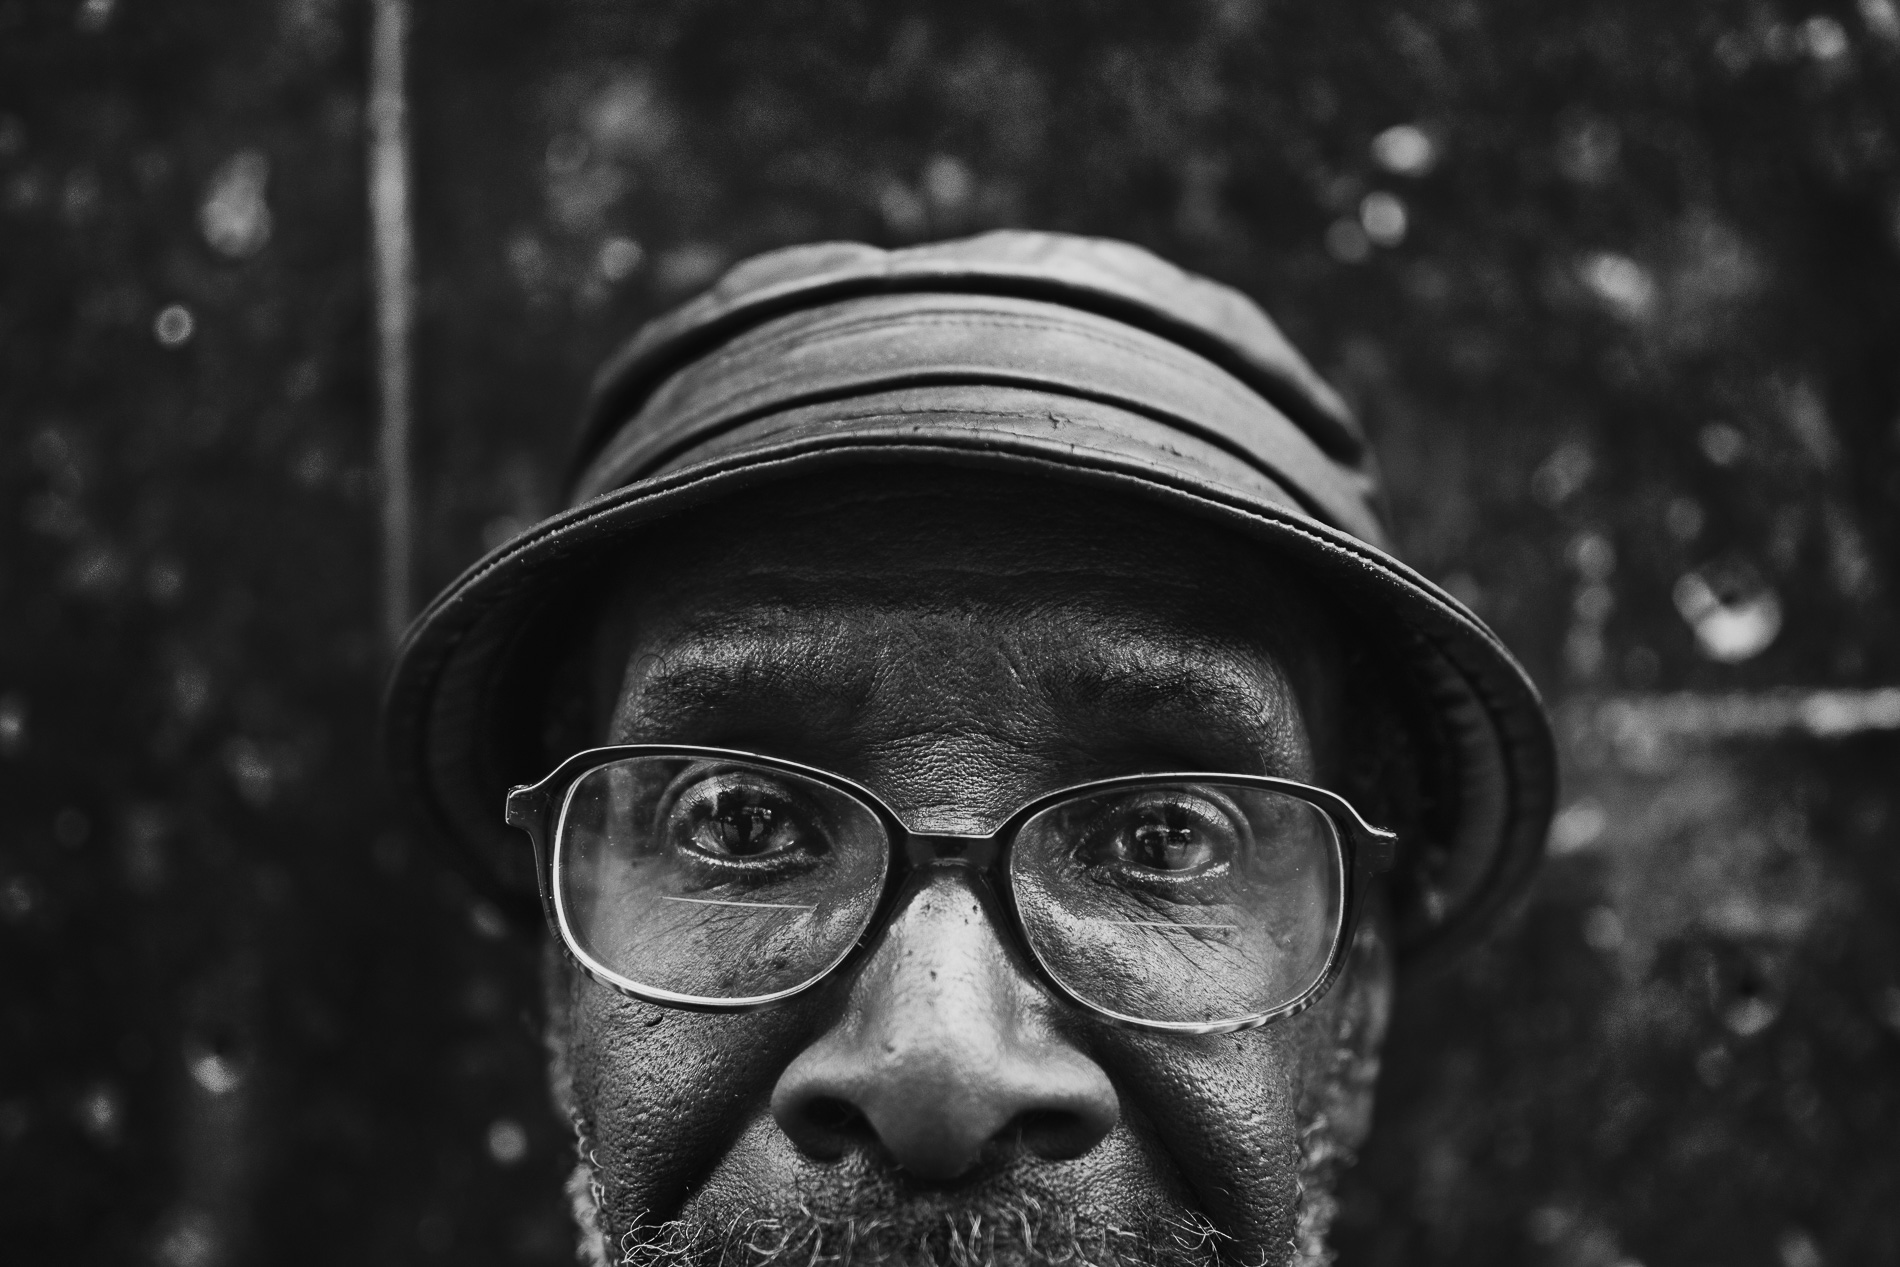 Australian Street and portrait photographer